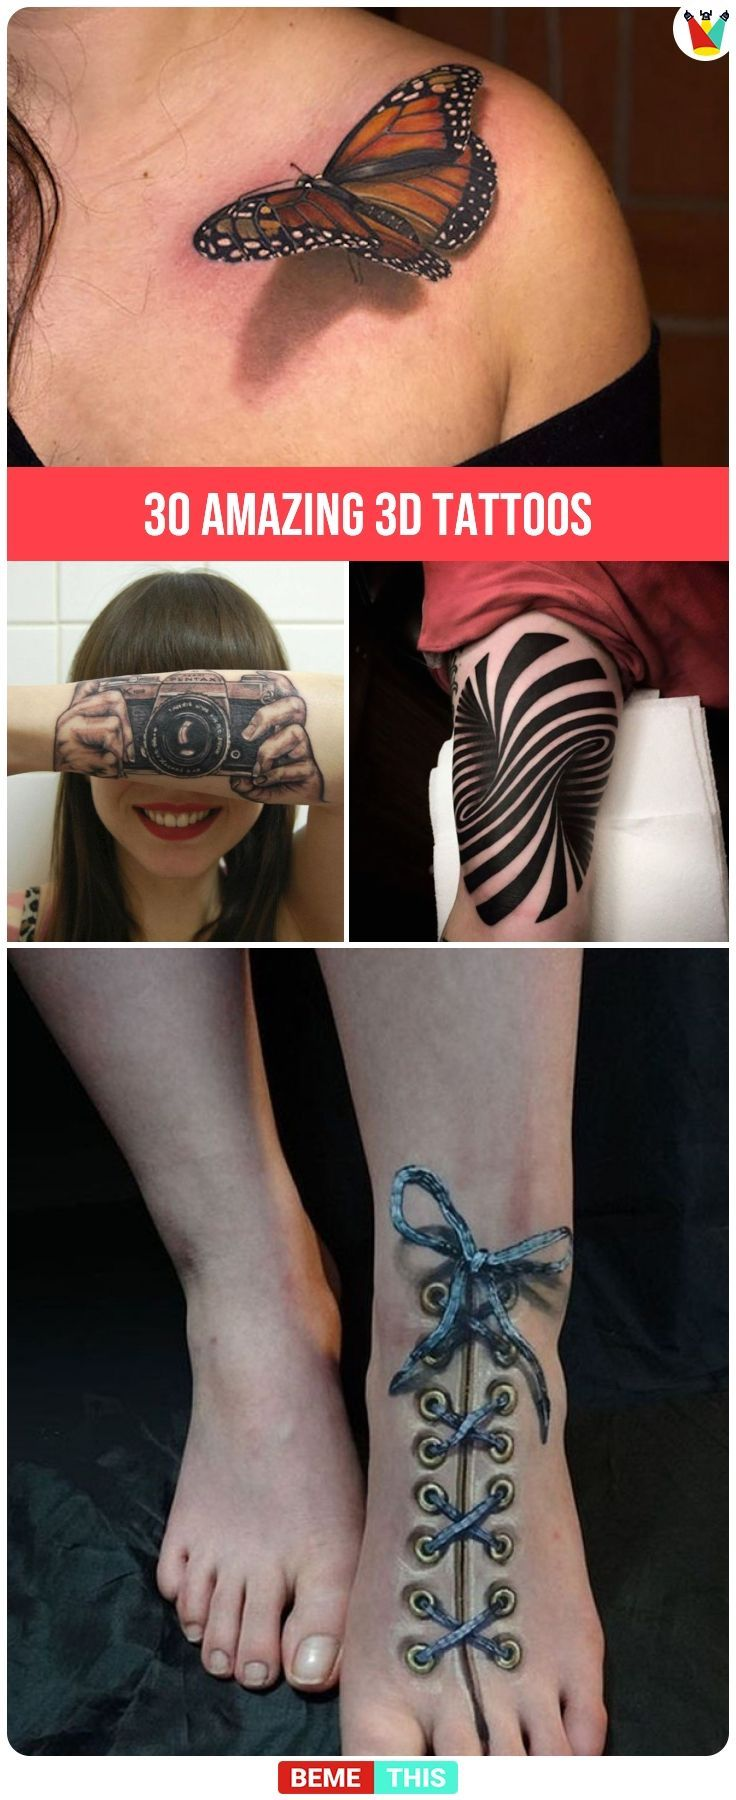 32 Amazing 3d Tattoos That Turn Human Body Into A Masterpiece